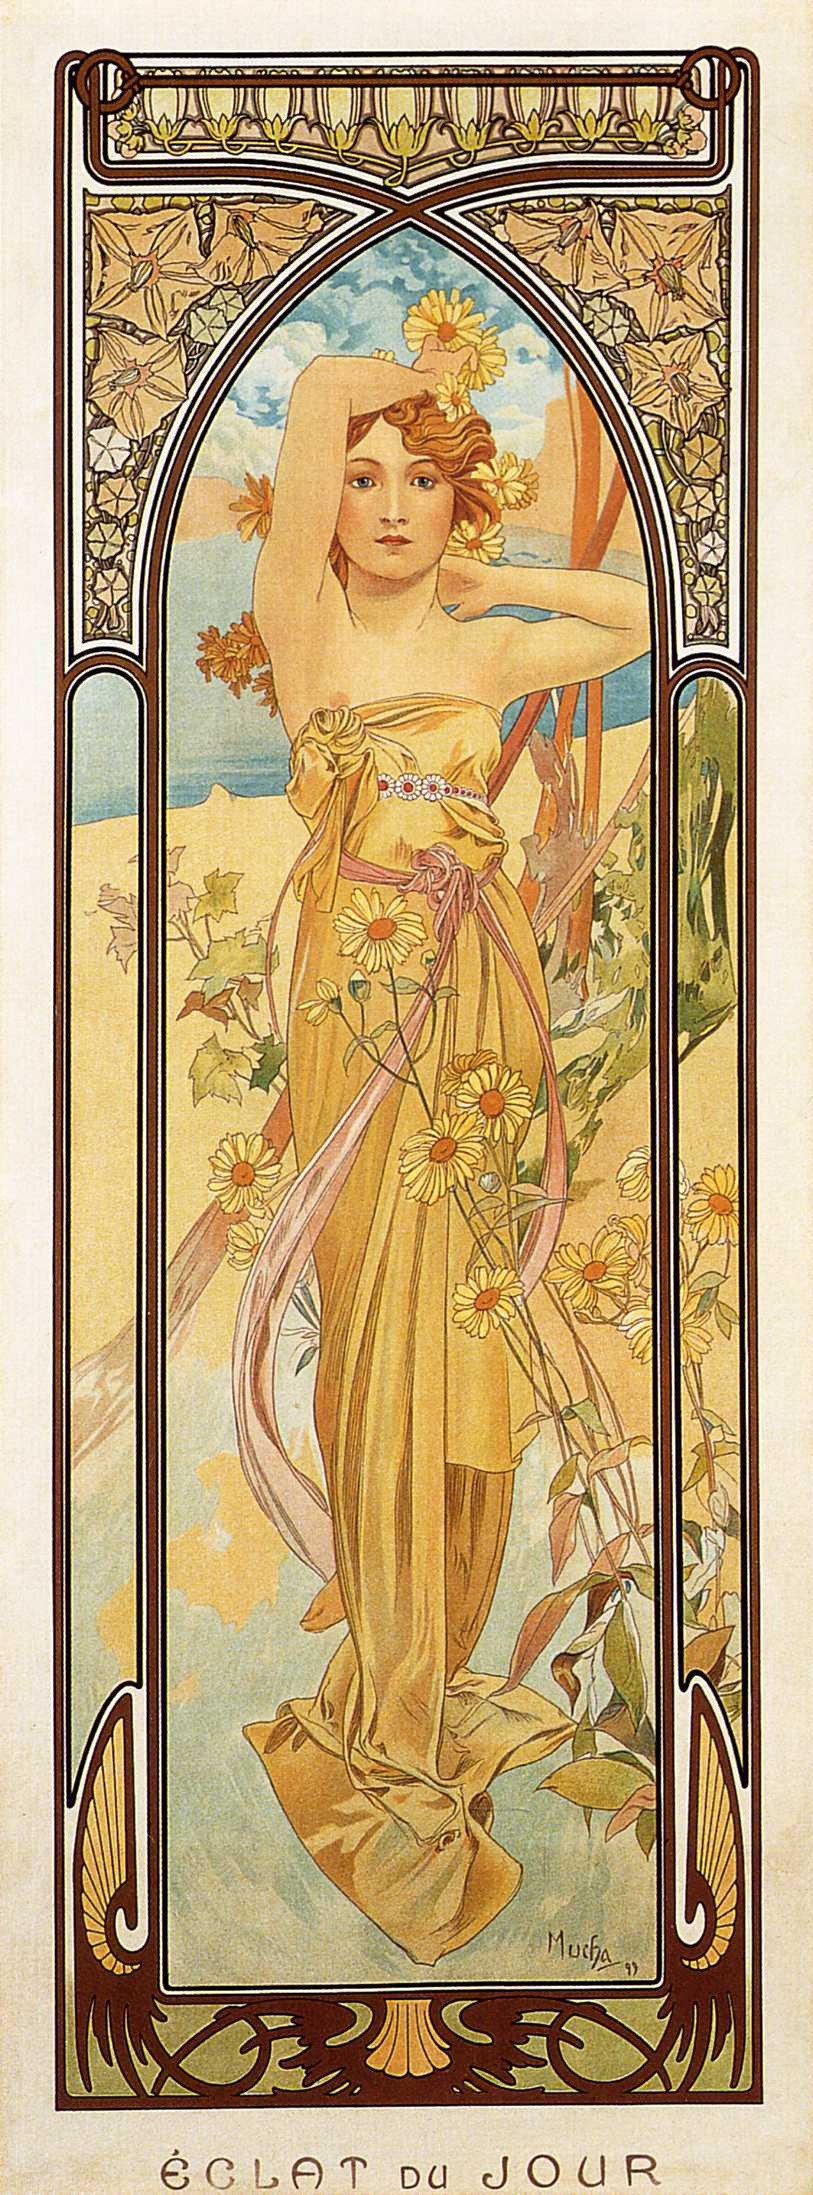 Alfons Mucha. Day impulse. Series times of the day